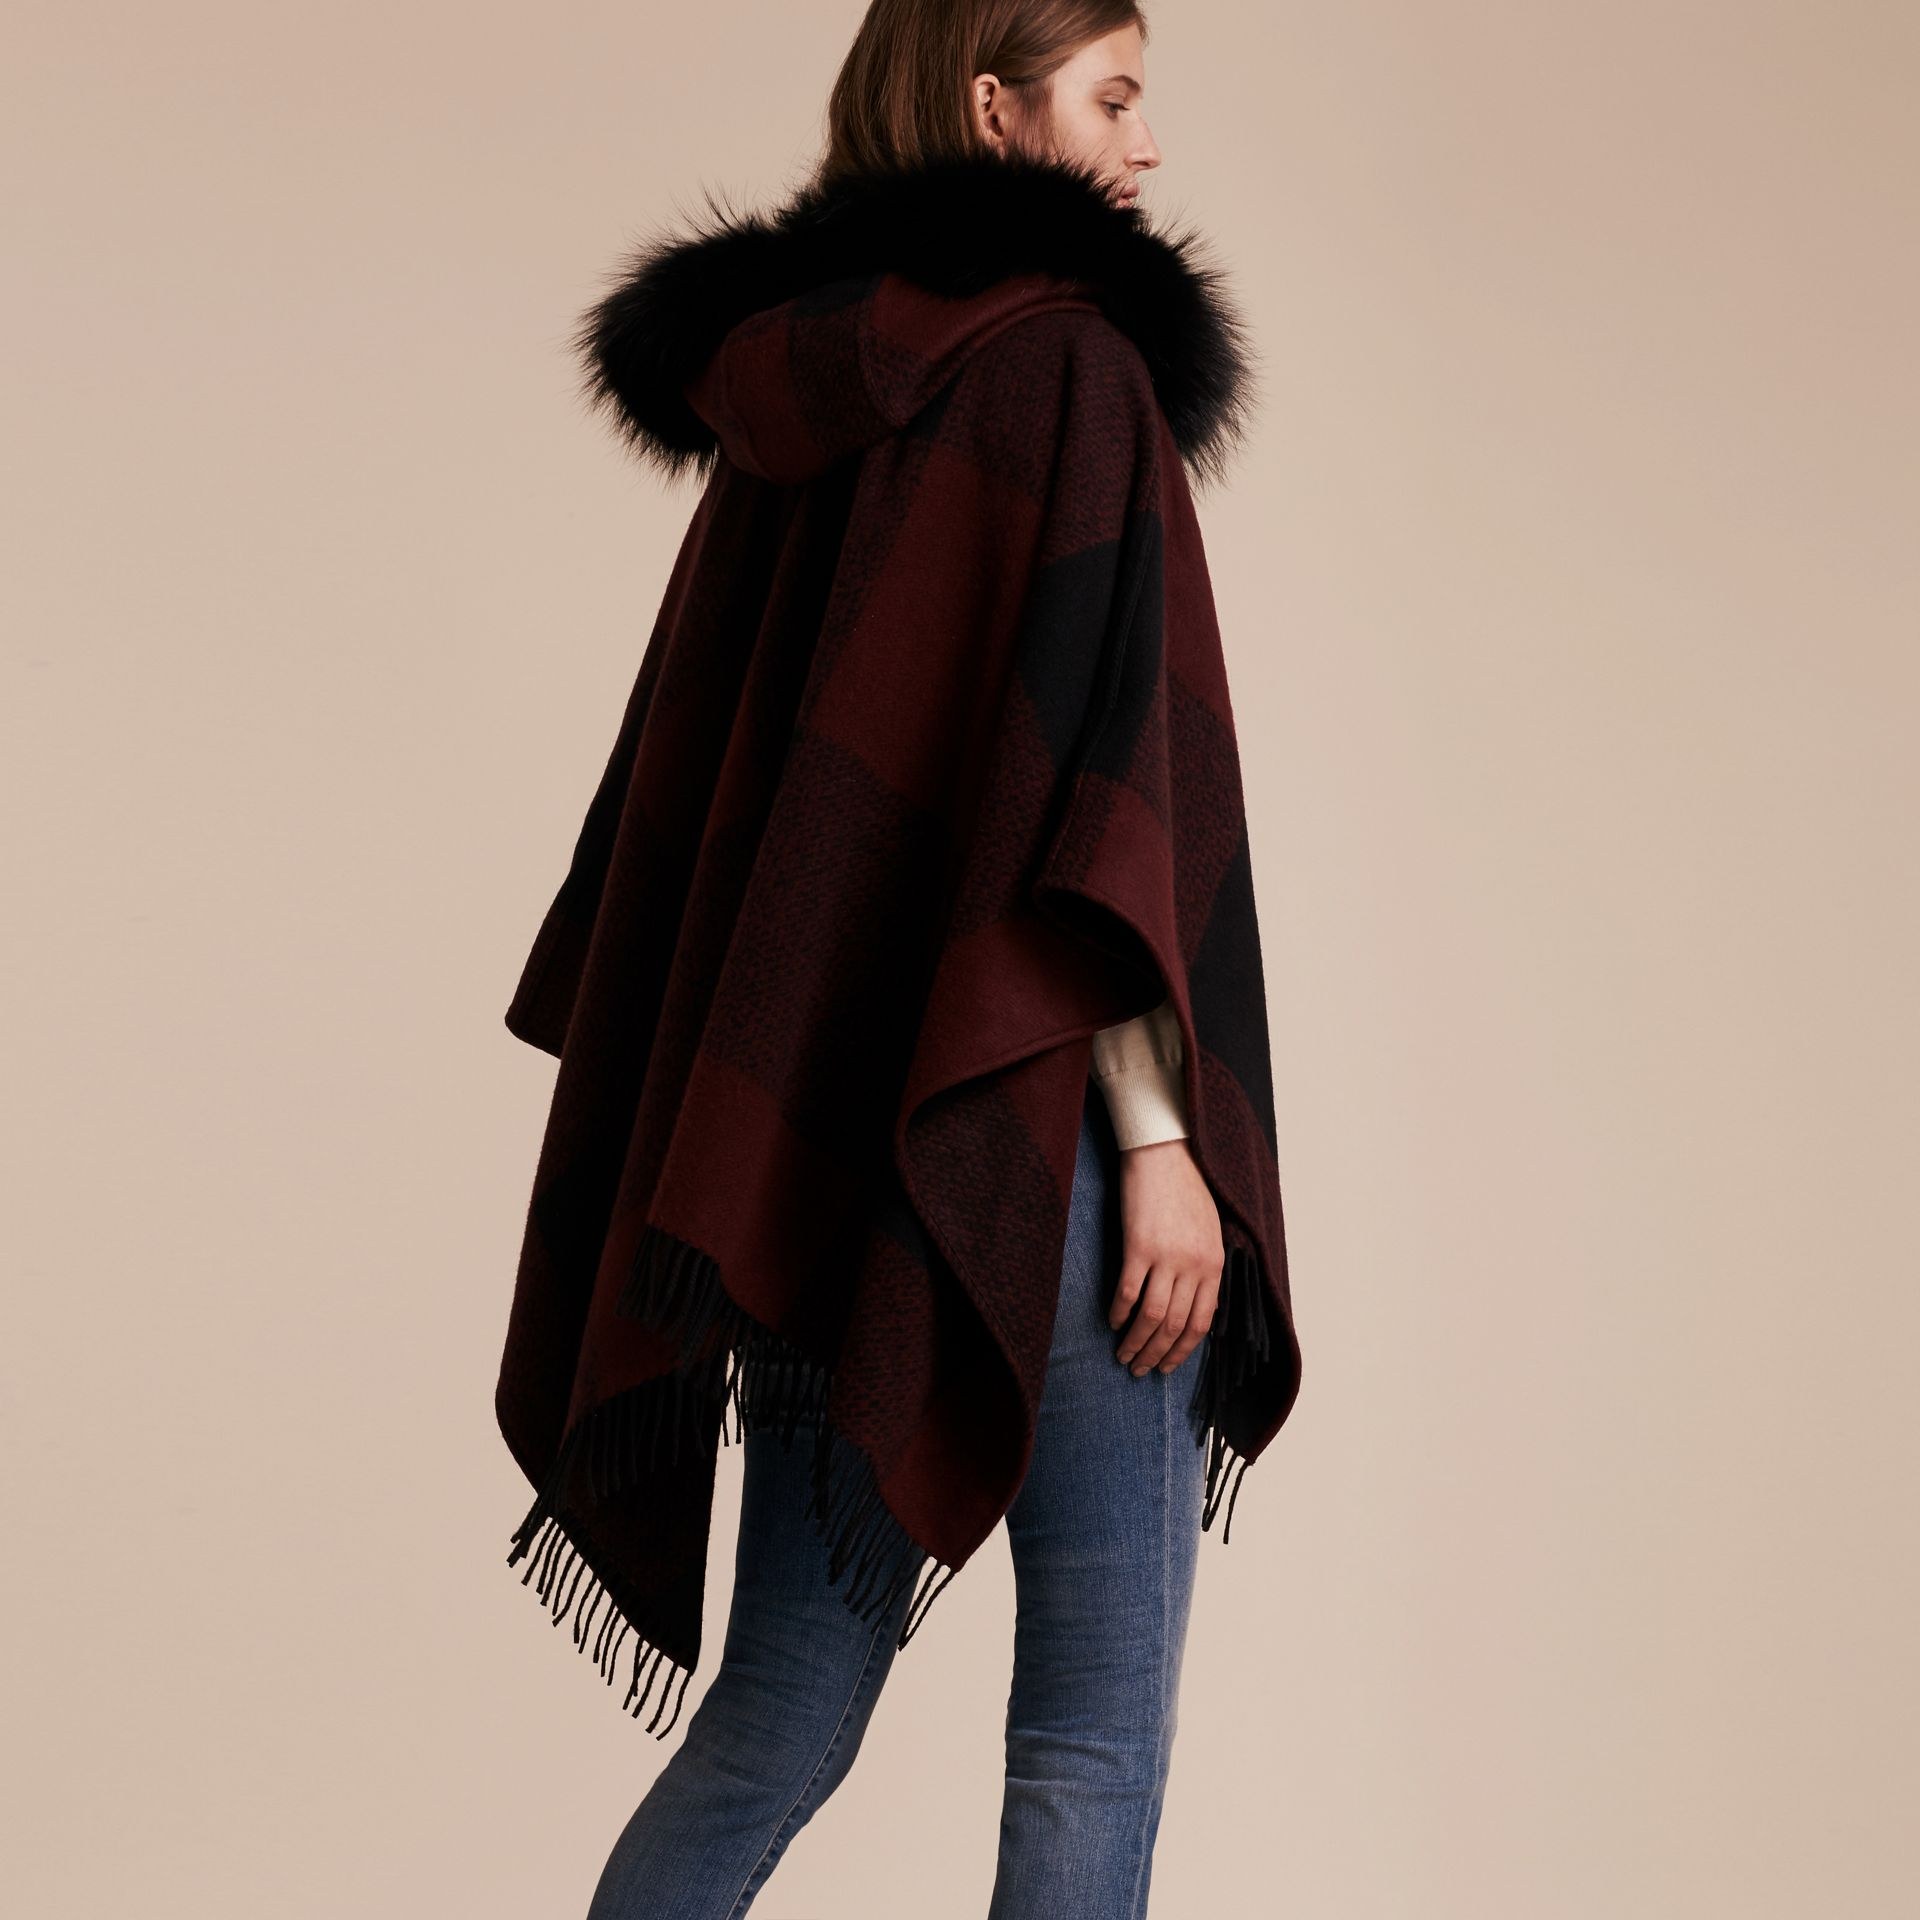 Claret Fur-trimmed Buffalo Check Wool Cashmere Poncho Claret - gallery image 3